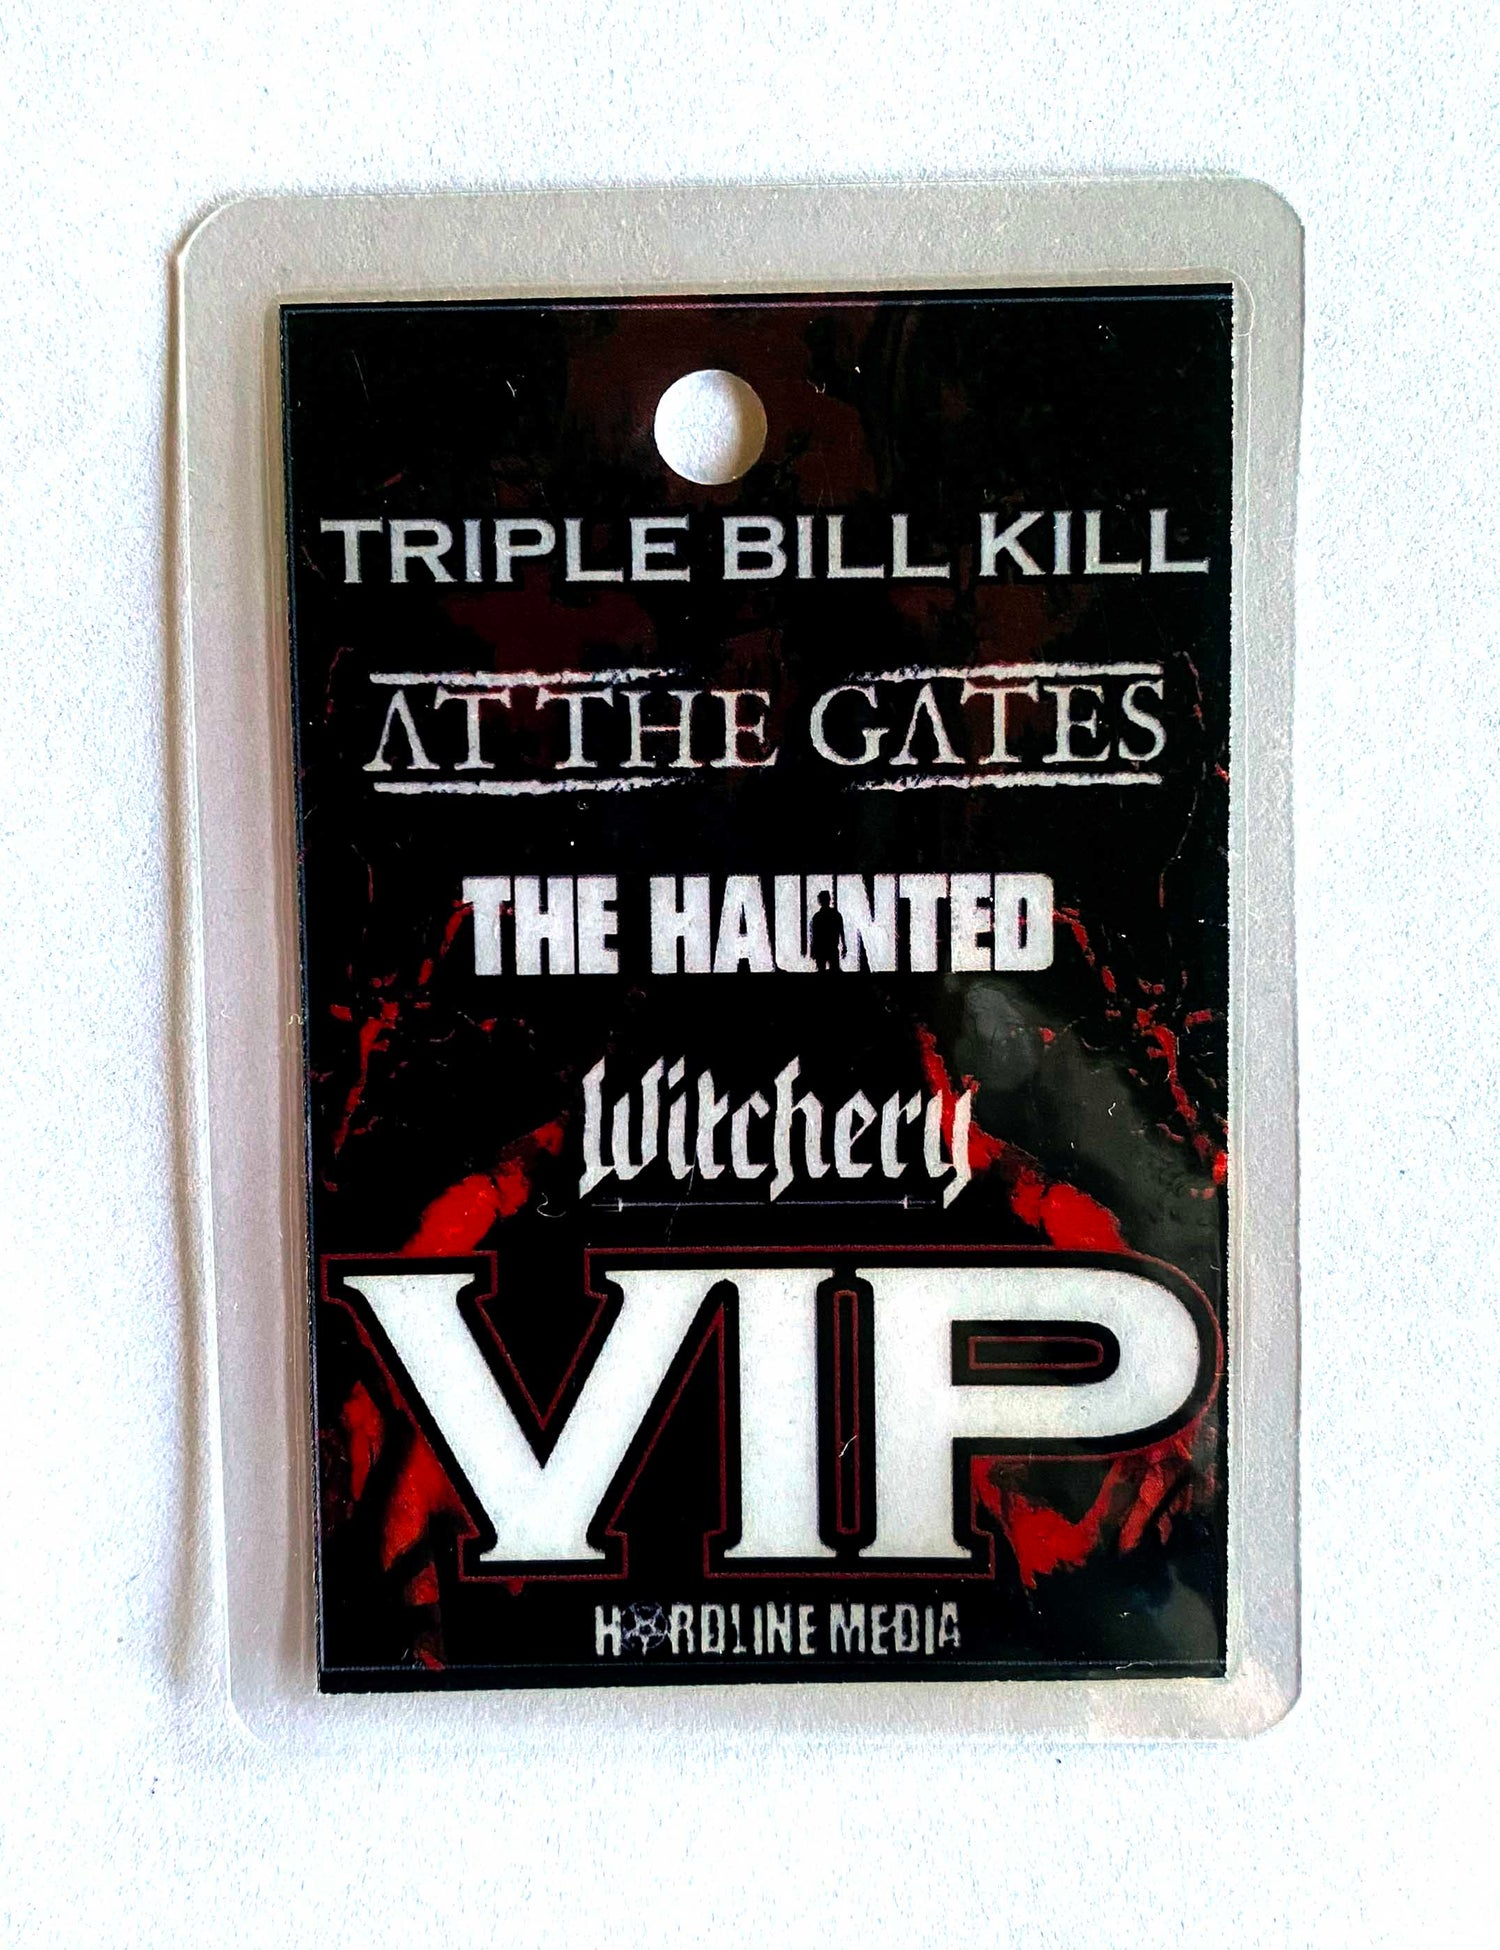 Image of AT THE GATES / THE HAUNTED / WITCHERY - Triple Bill Kill - Aussie Tour VIP Laminate